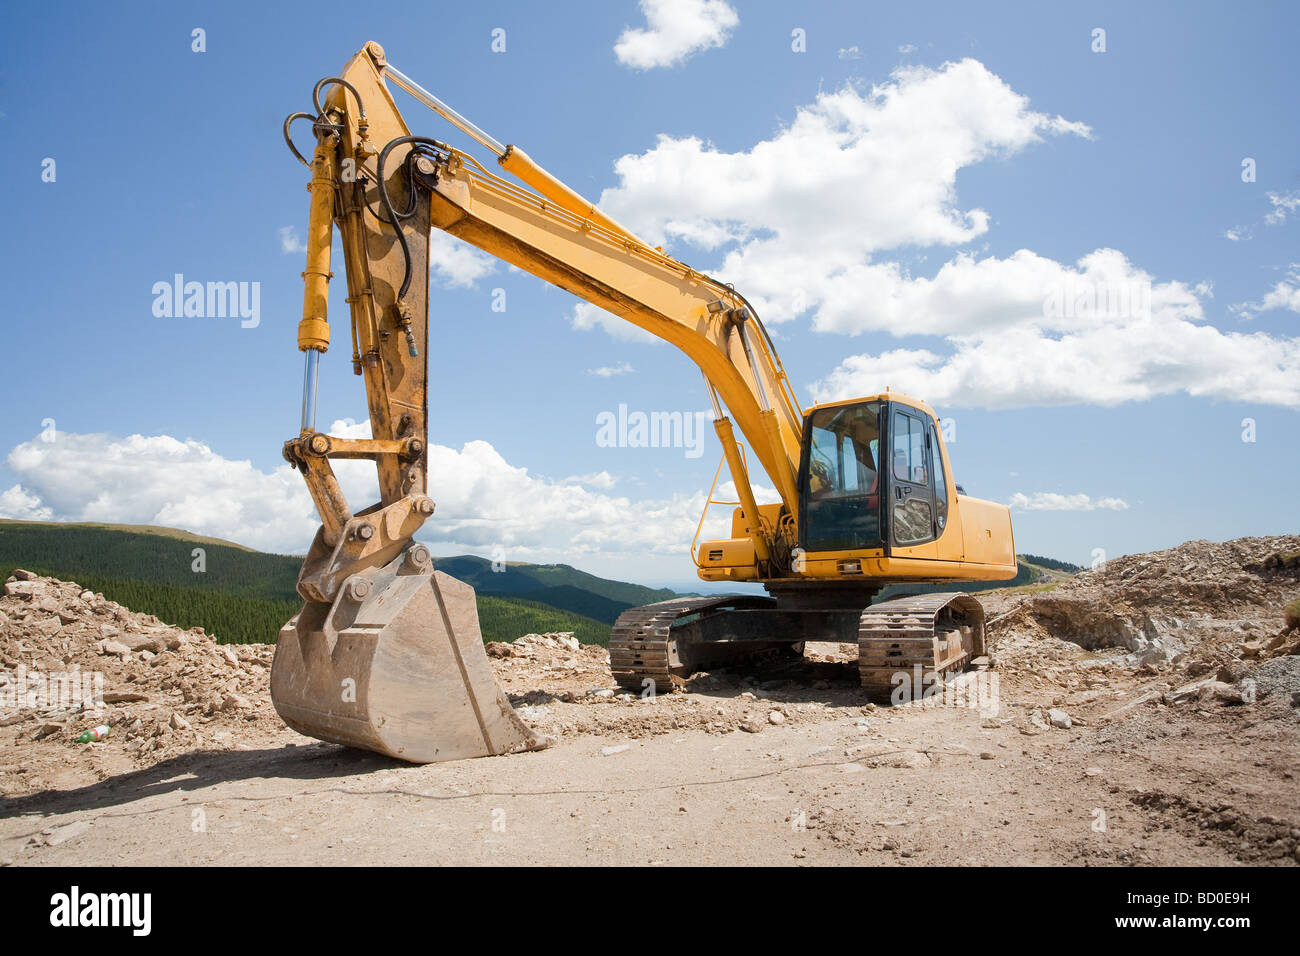 Excavator or digger construction machinery at a construction site outdoors Stock Photo